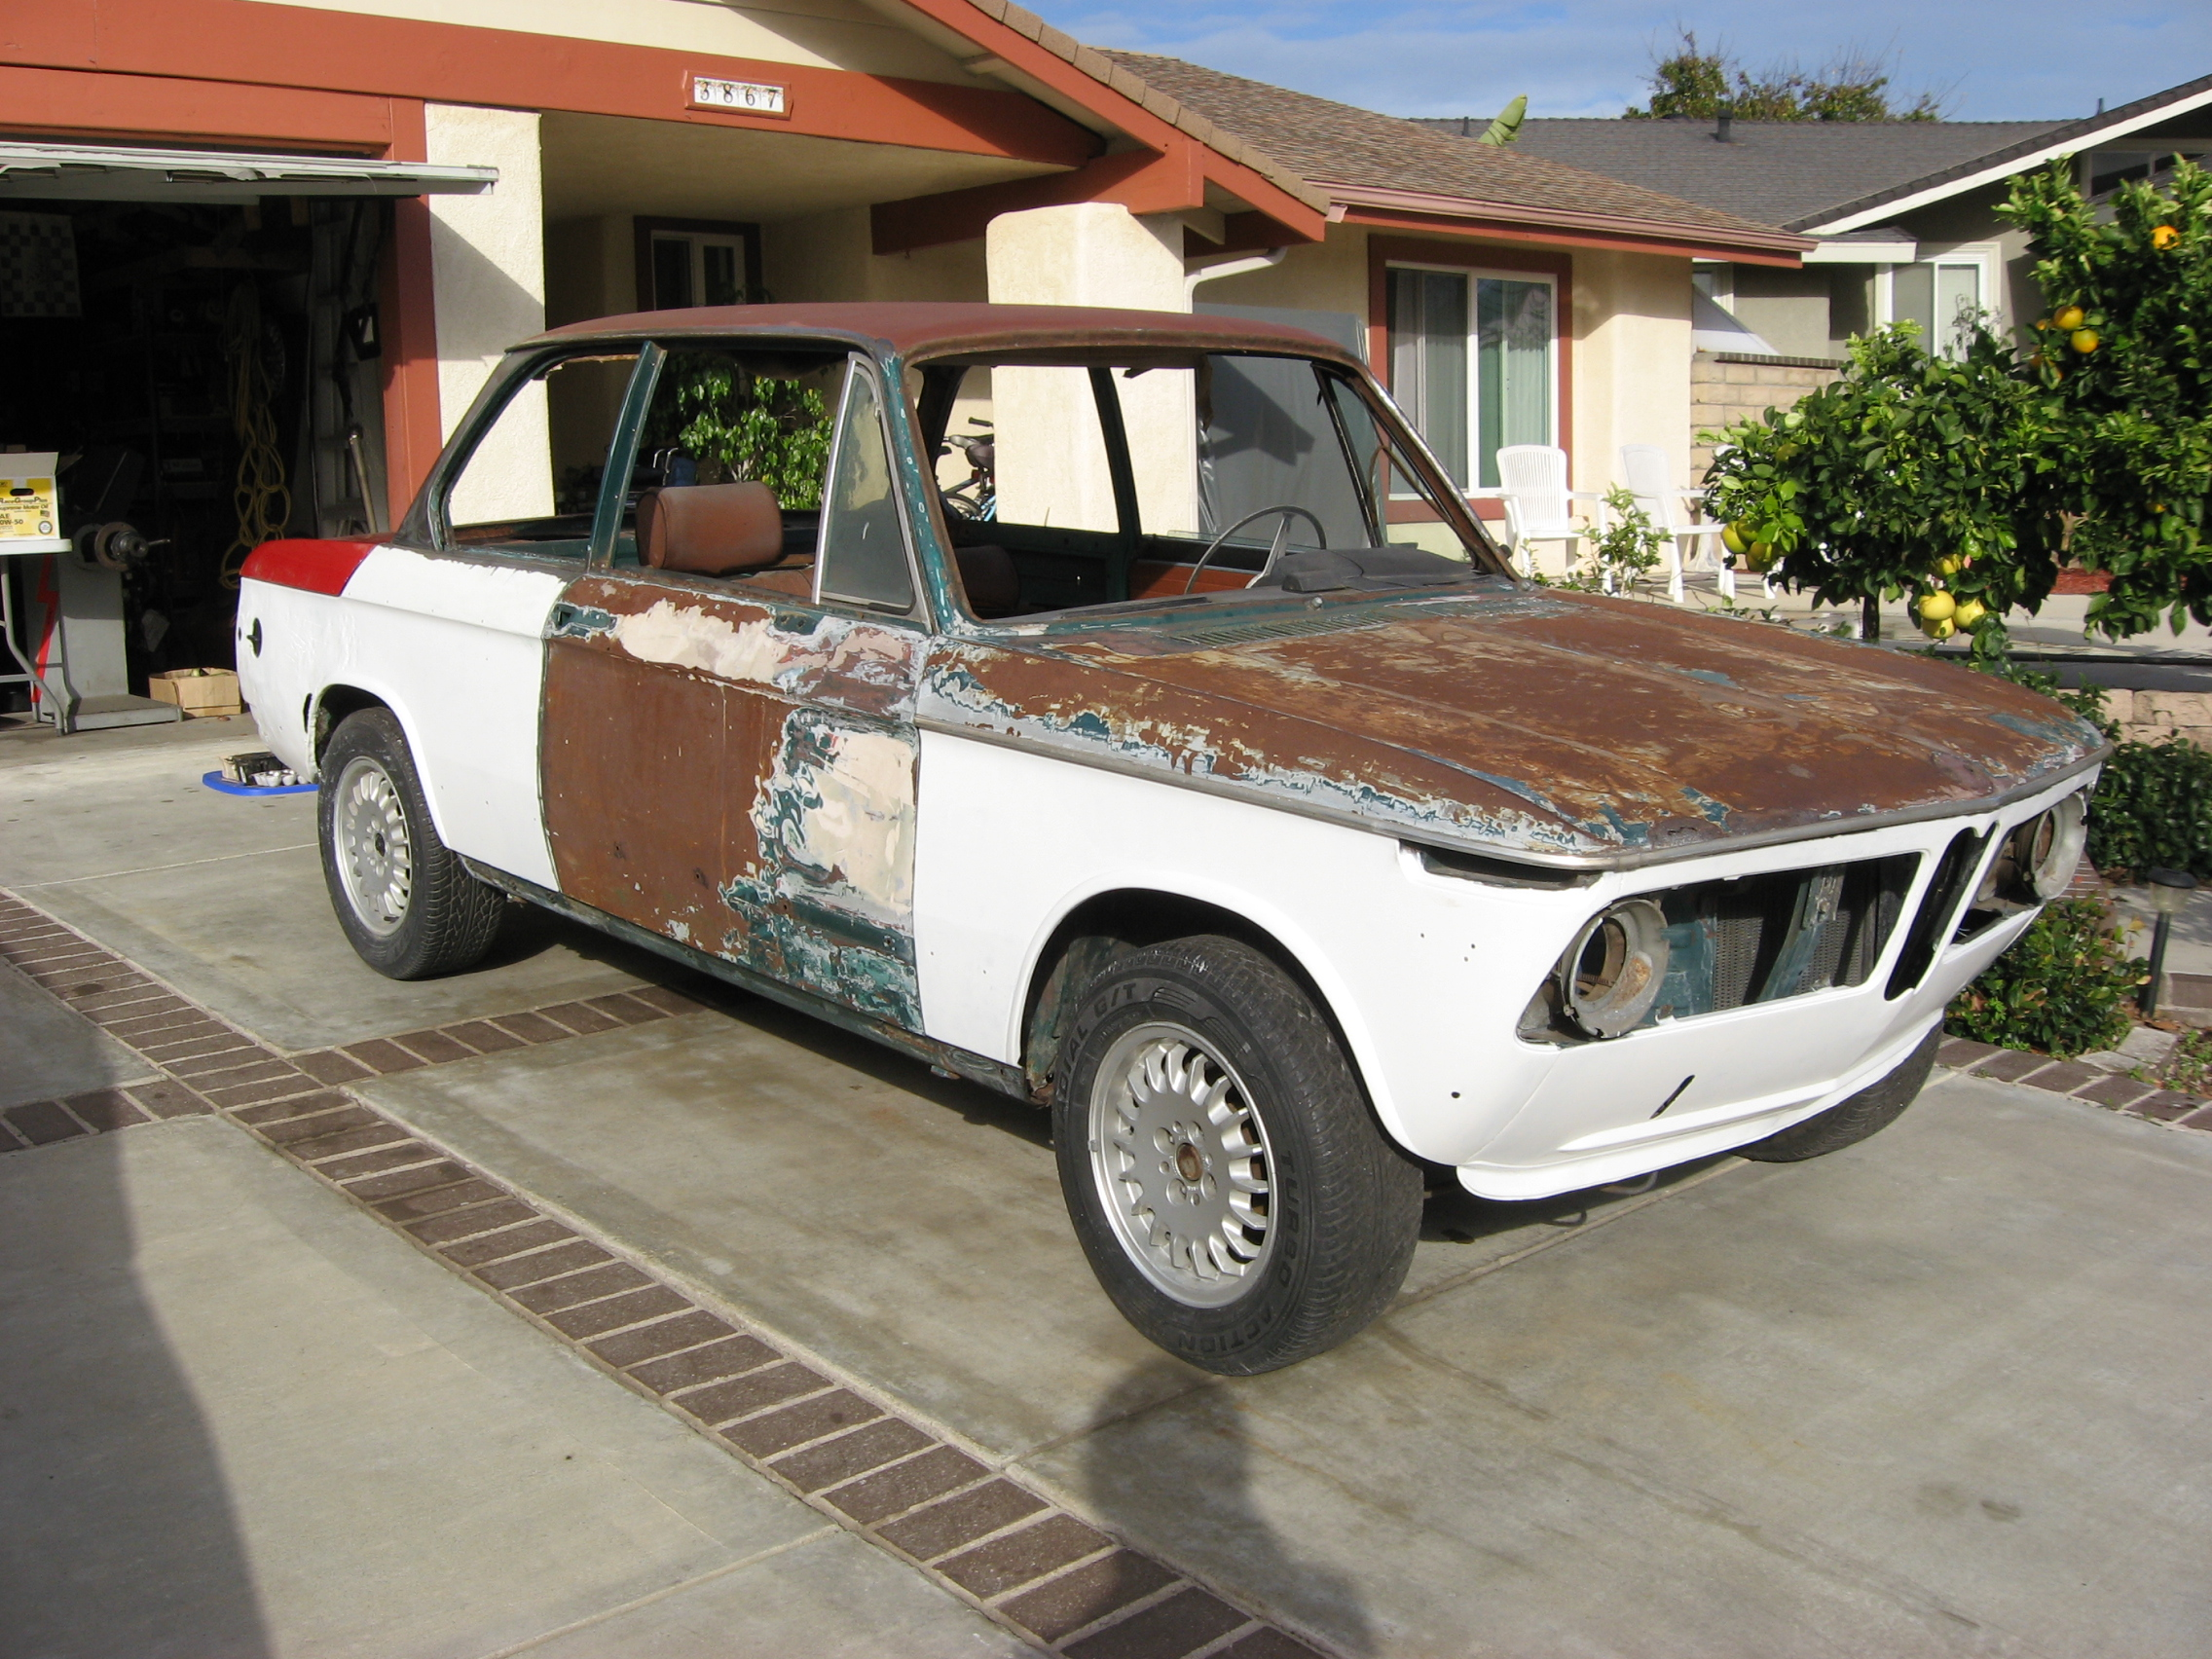 Bmw 2002 For Sale >> 1973 2002tii Project For Sale Cars For Sale Wanted Bmw 2002 Faq